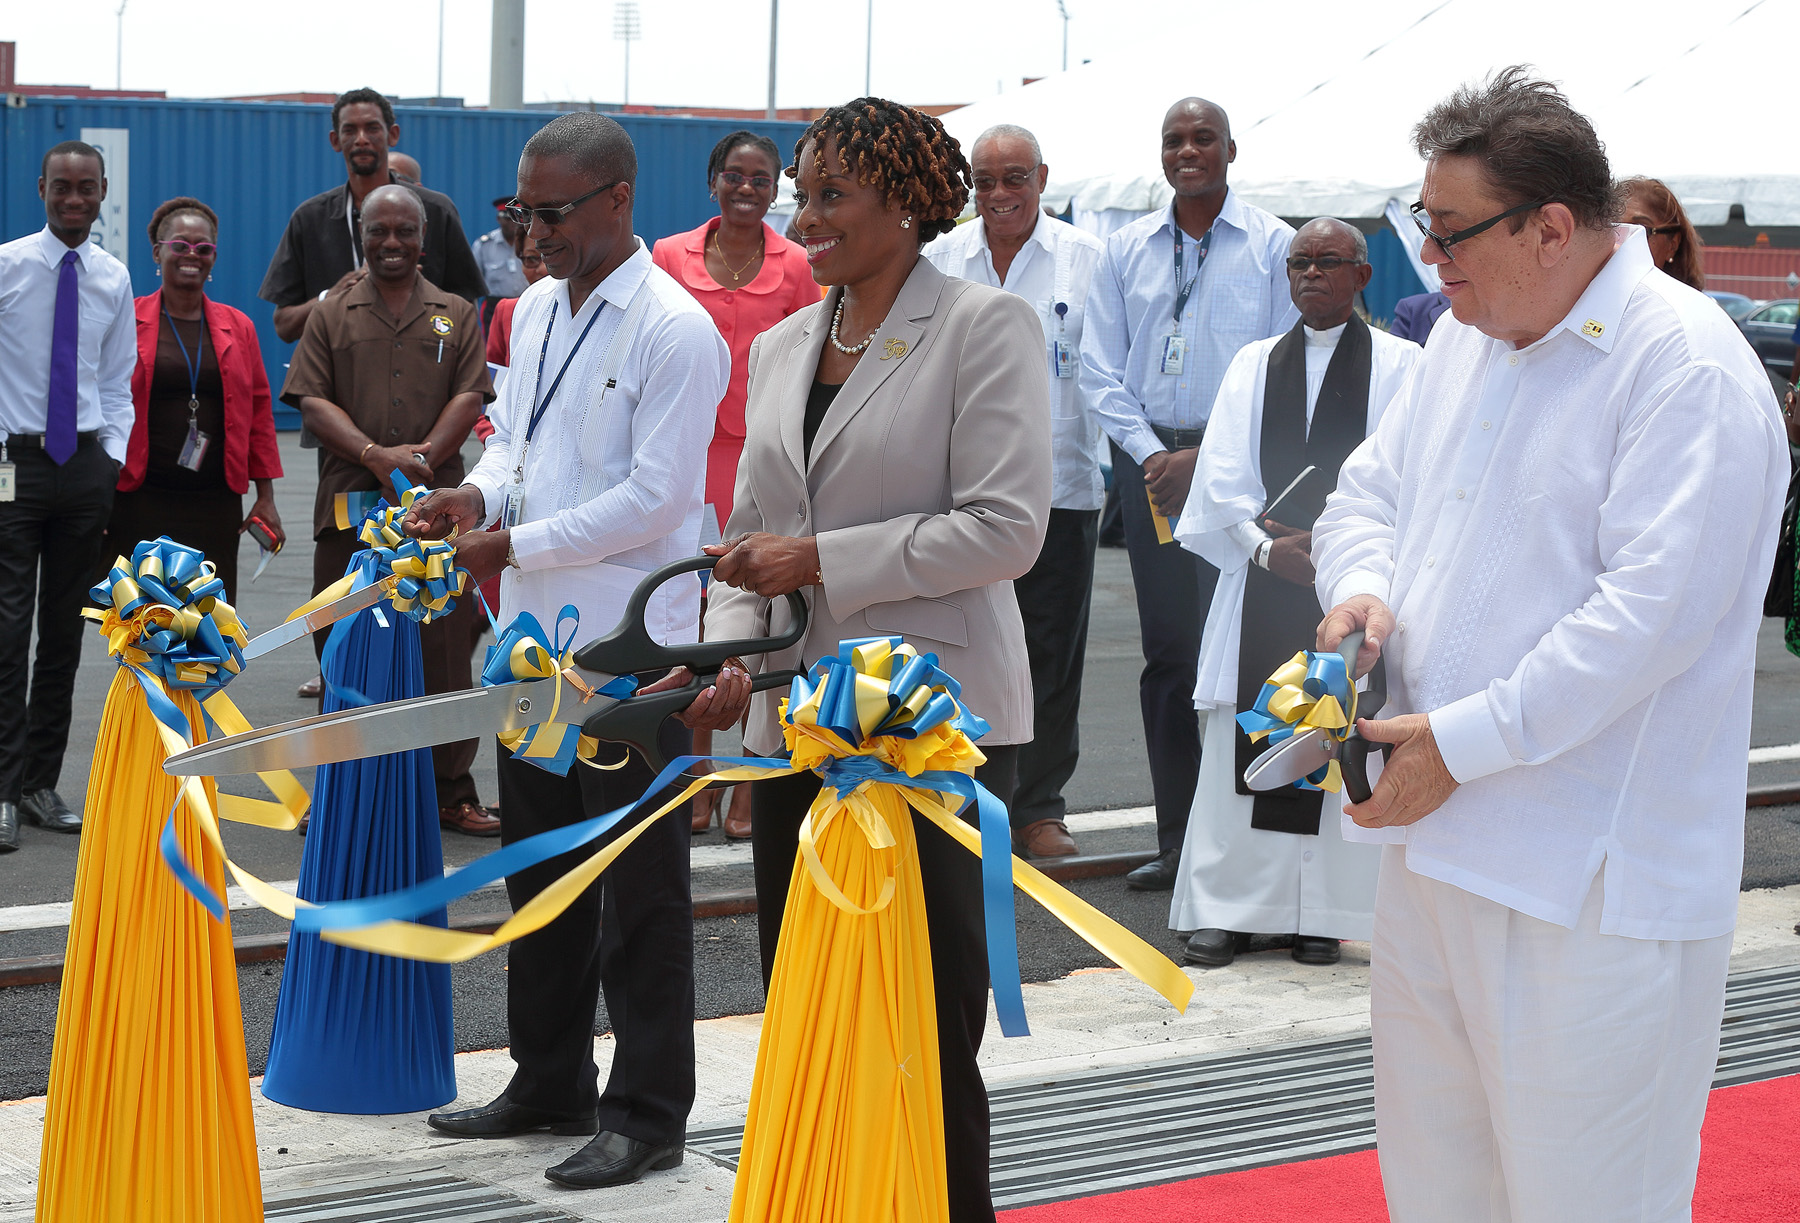 Barbados Port Inc. held a commissioning ceremony for new equipment in April 2016